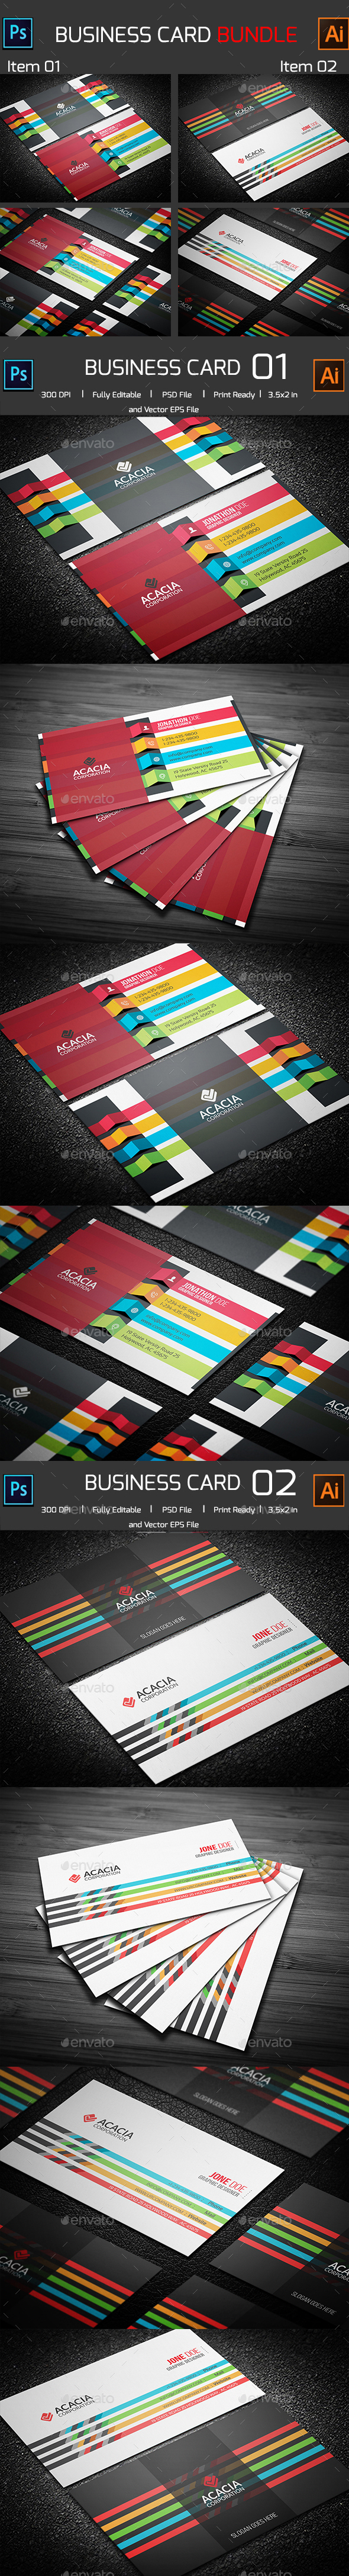 Bundle- 2 in 1 Business Card_10 - Corporate Business Cards